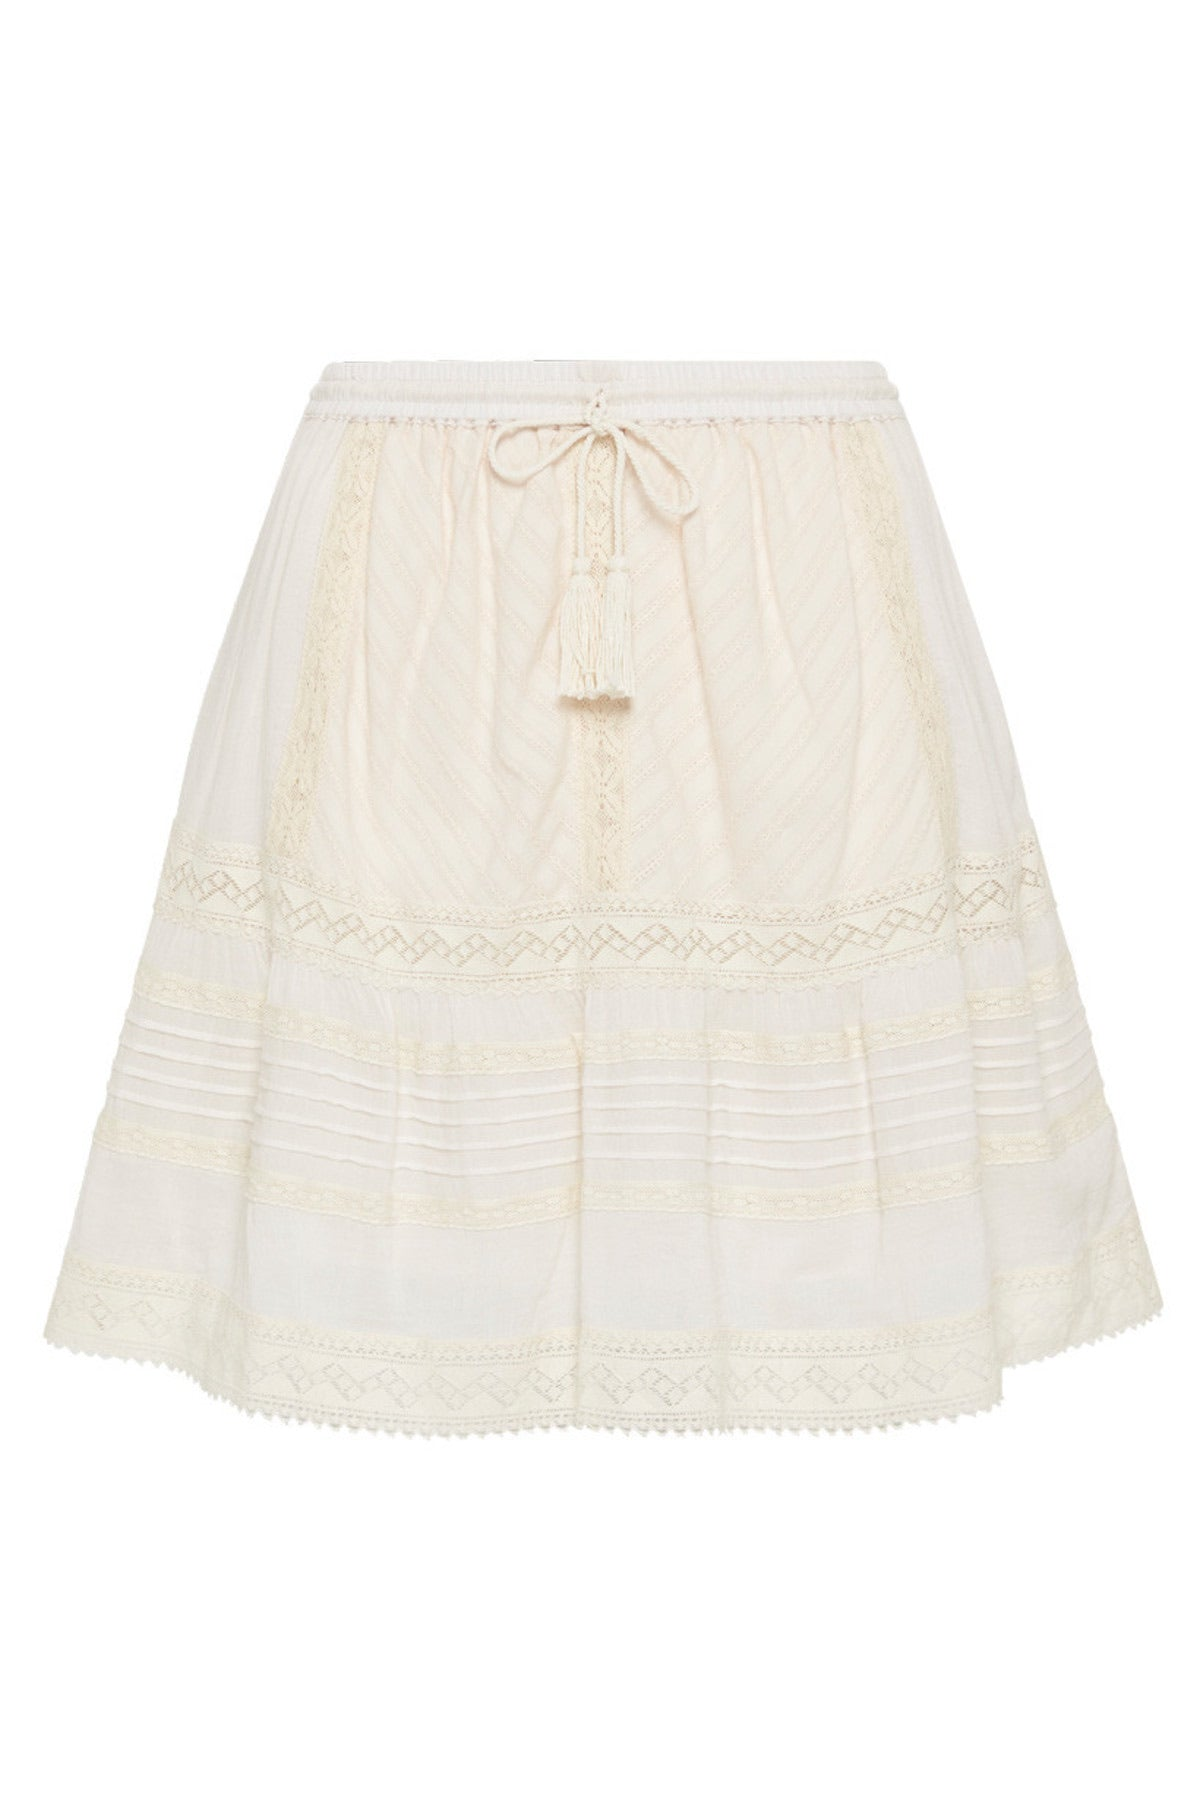 Cinder Mini Skirt- Off White , SPELL & THE GYPSY COLLECTIVE - Moda Boheme